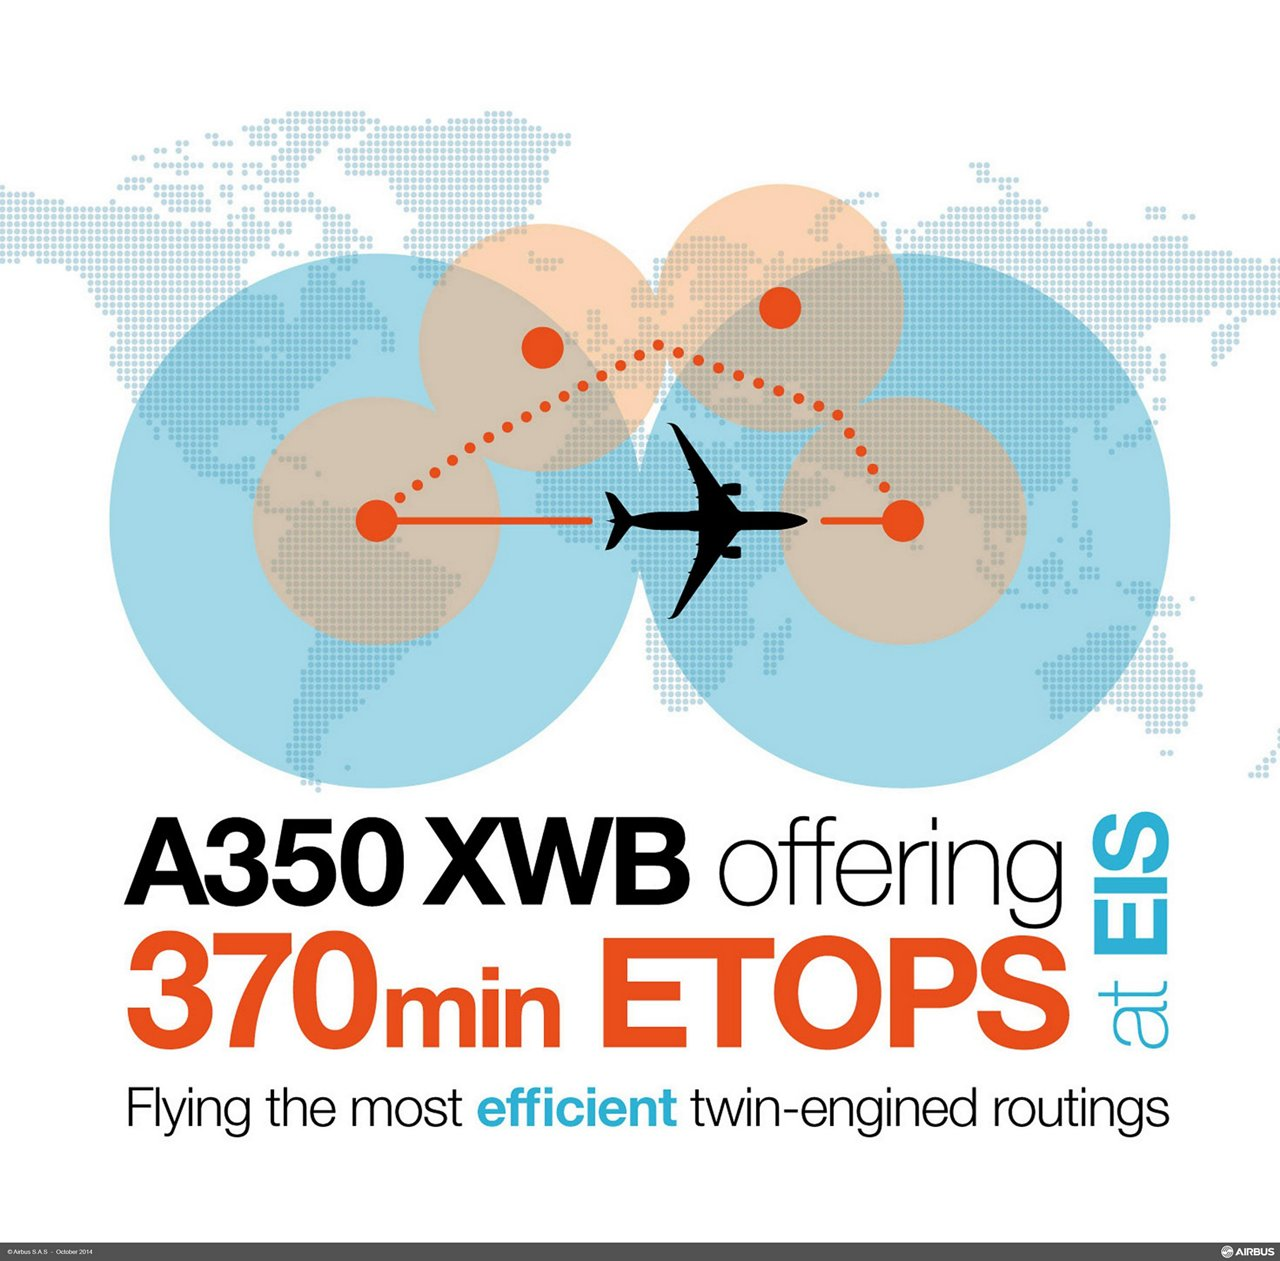 The European Aviation Safety Agency (EASA) has certified Airbus' A350-900 jetliner for up to 370 minute ETOPS (Extended-range Twin engine aircraft Operations)